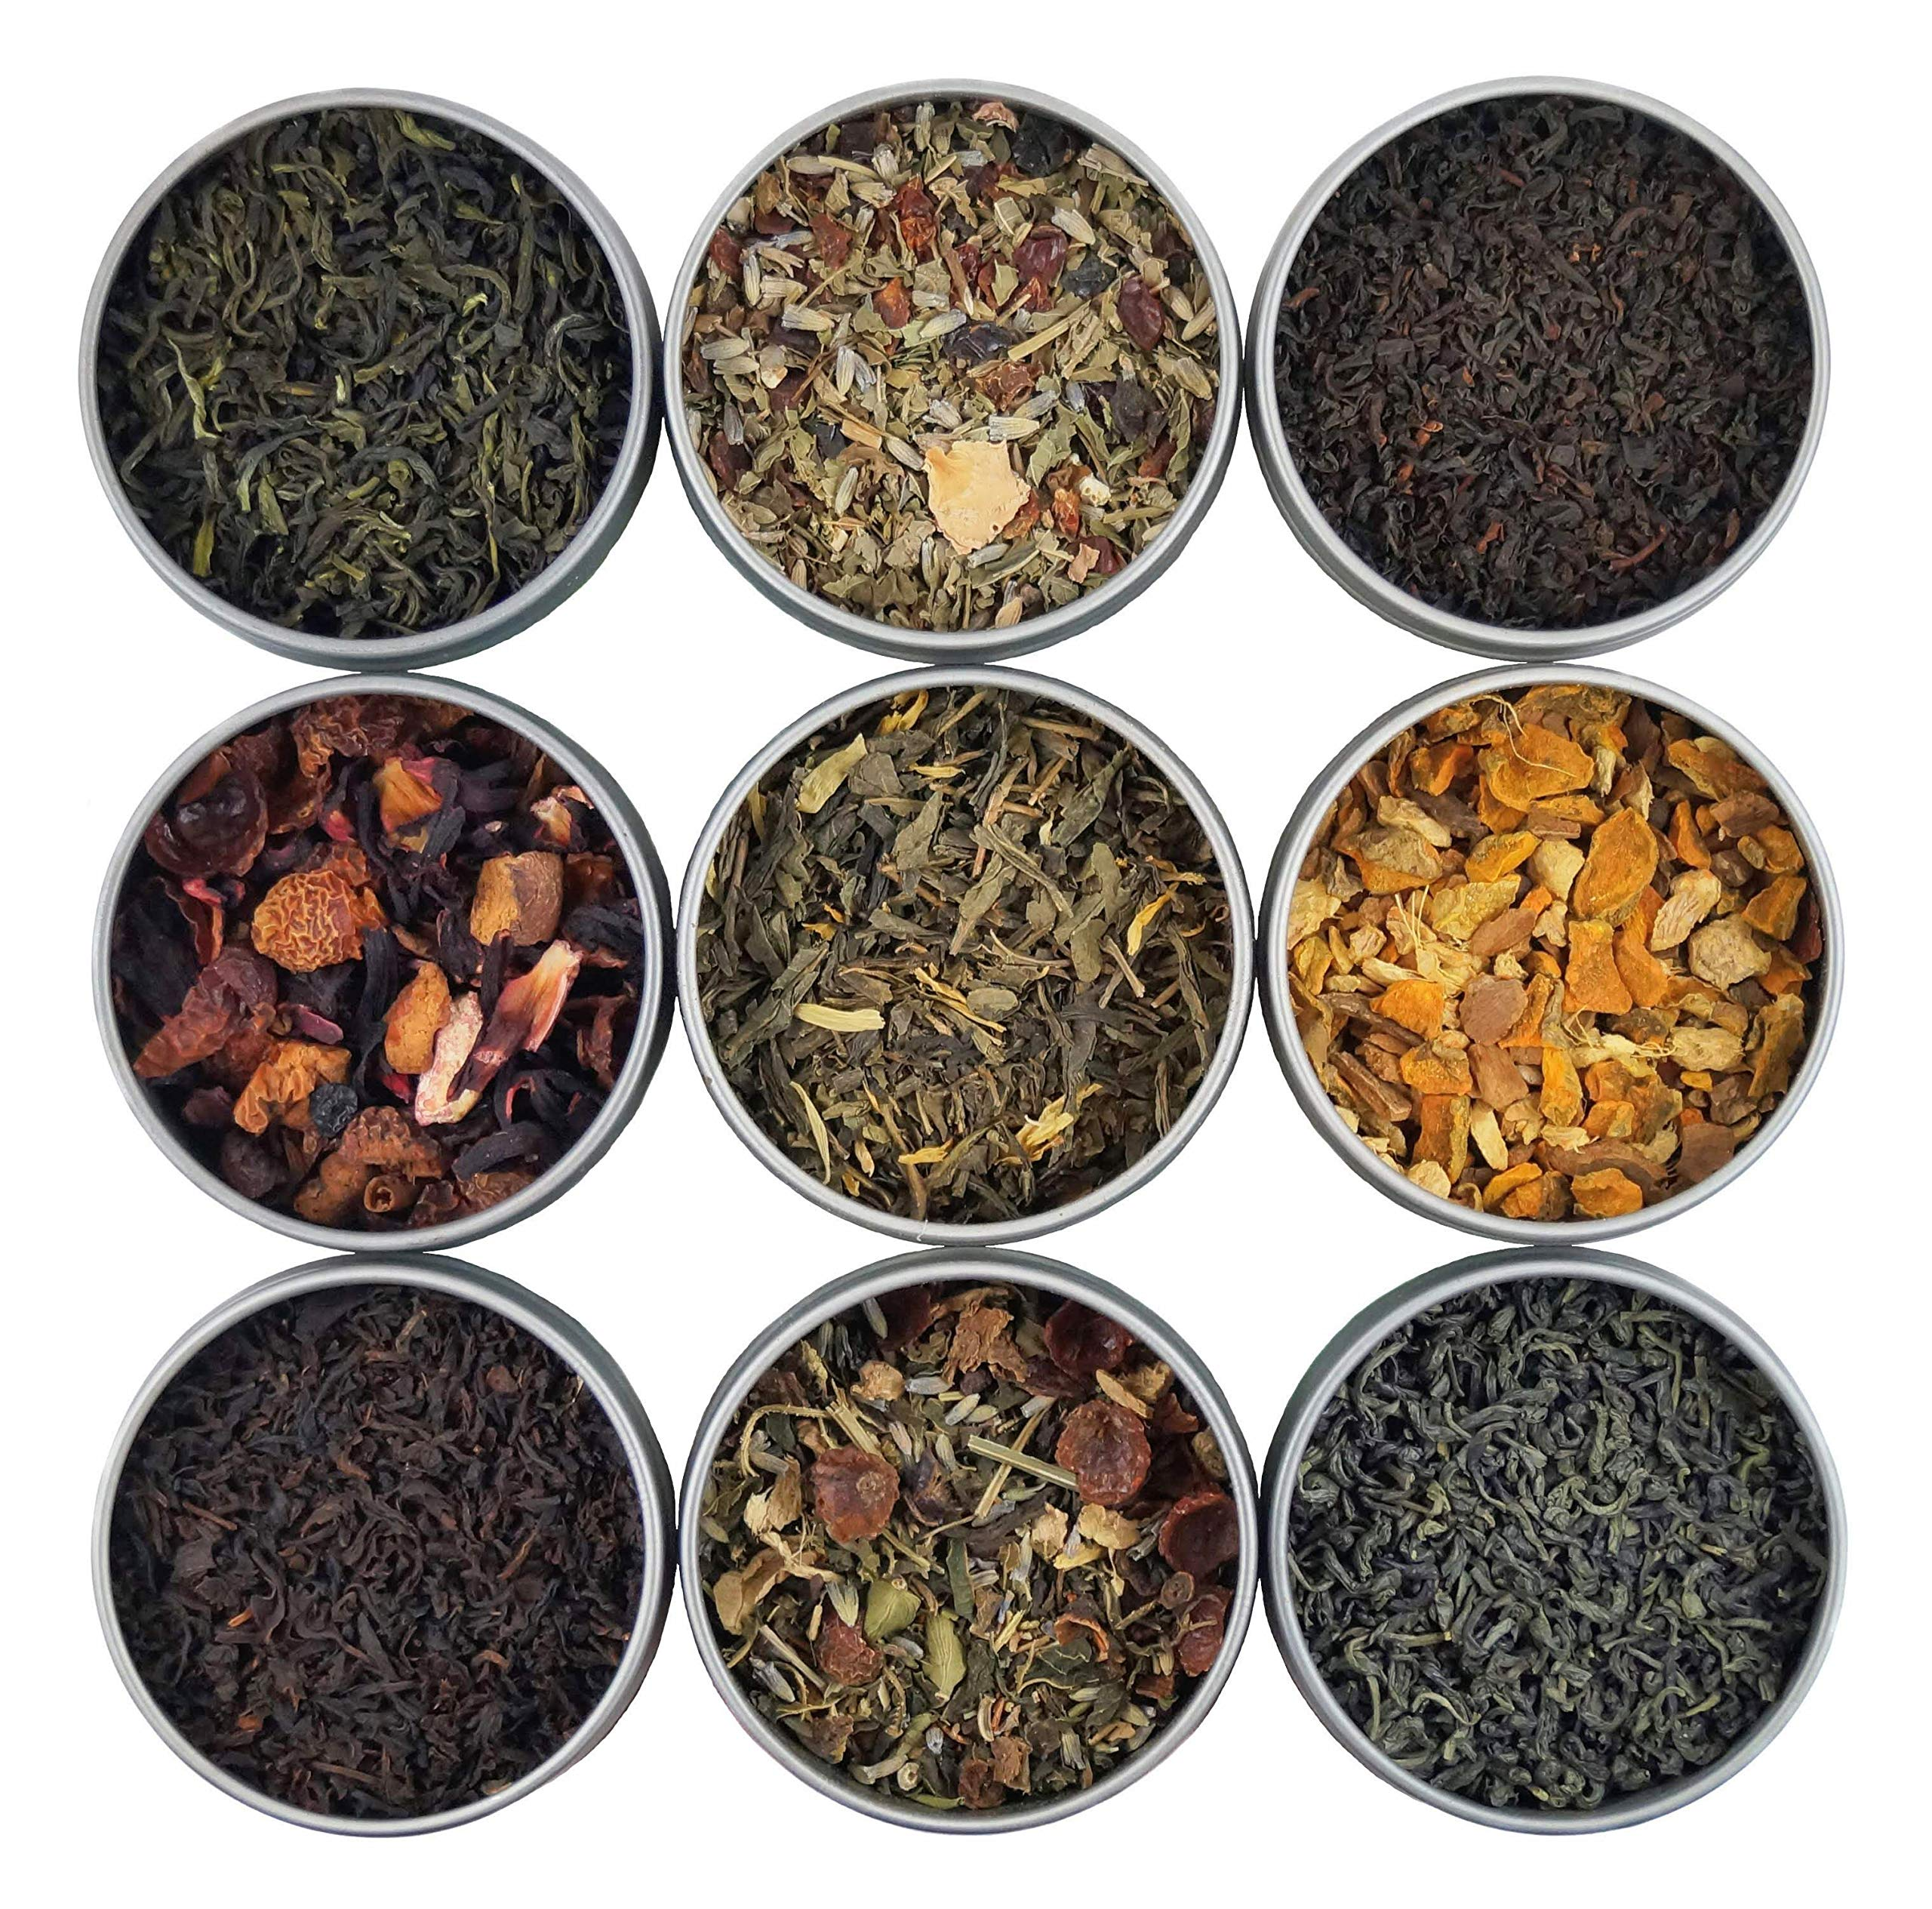 Heavenly Tea Leaves Organic Loose Leaf Tea Sampler Set, 9 Assorted Loose Leaf Teas & Tisanes